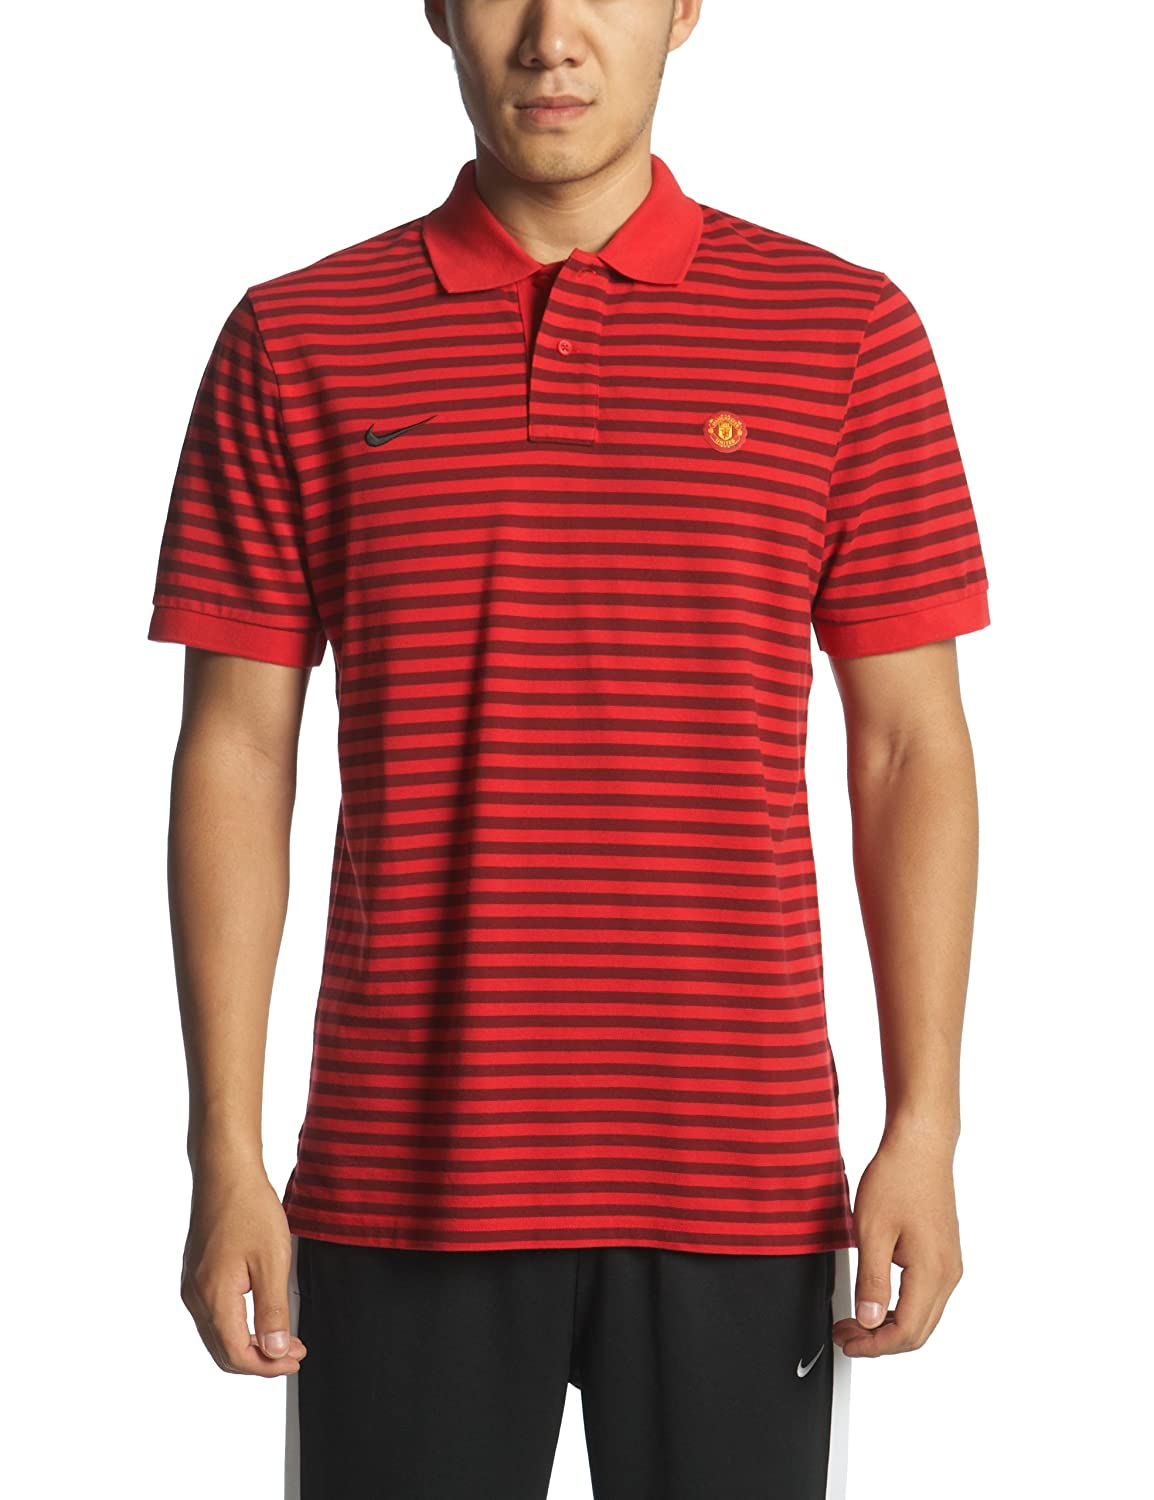 Nike Manchester United Polo auténtico 2010/11 - Red-M: Amazon.es ...